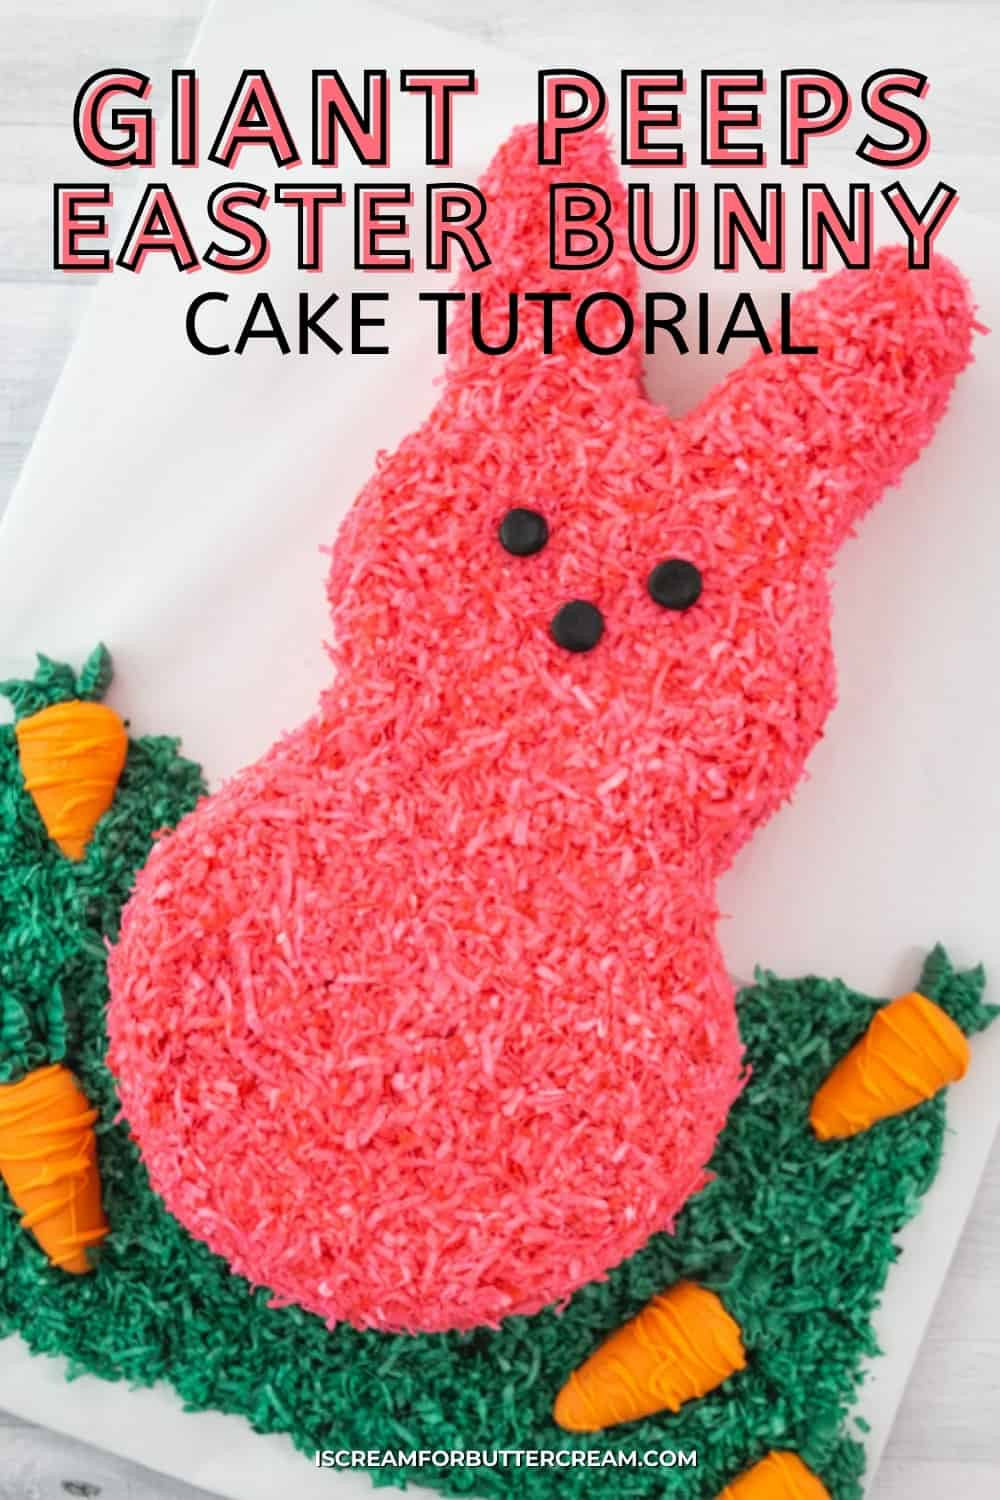 easter bunny peeps cake pin image with text overlay